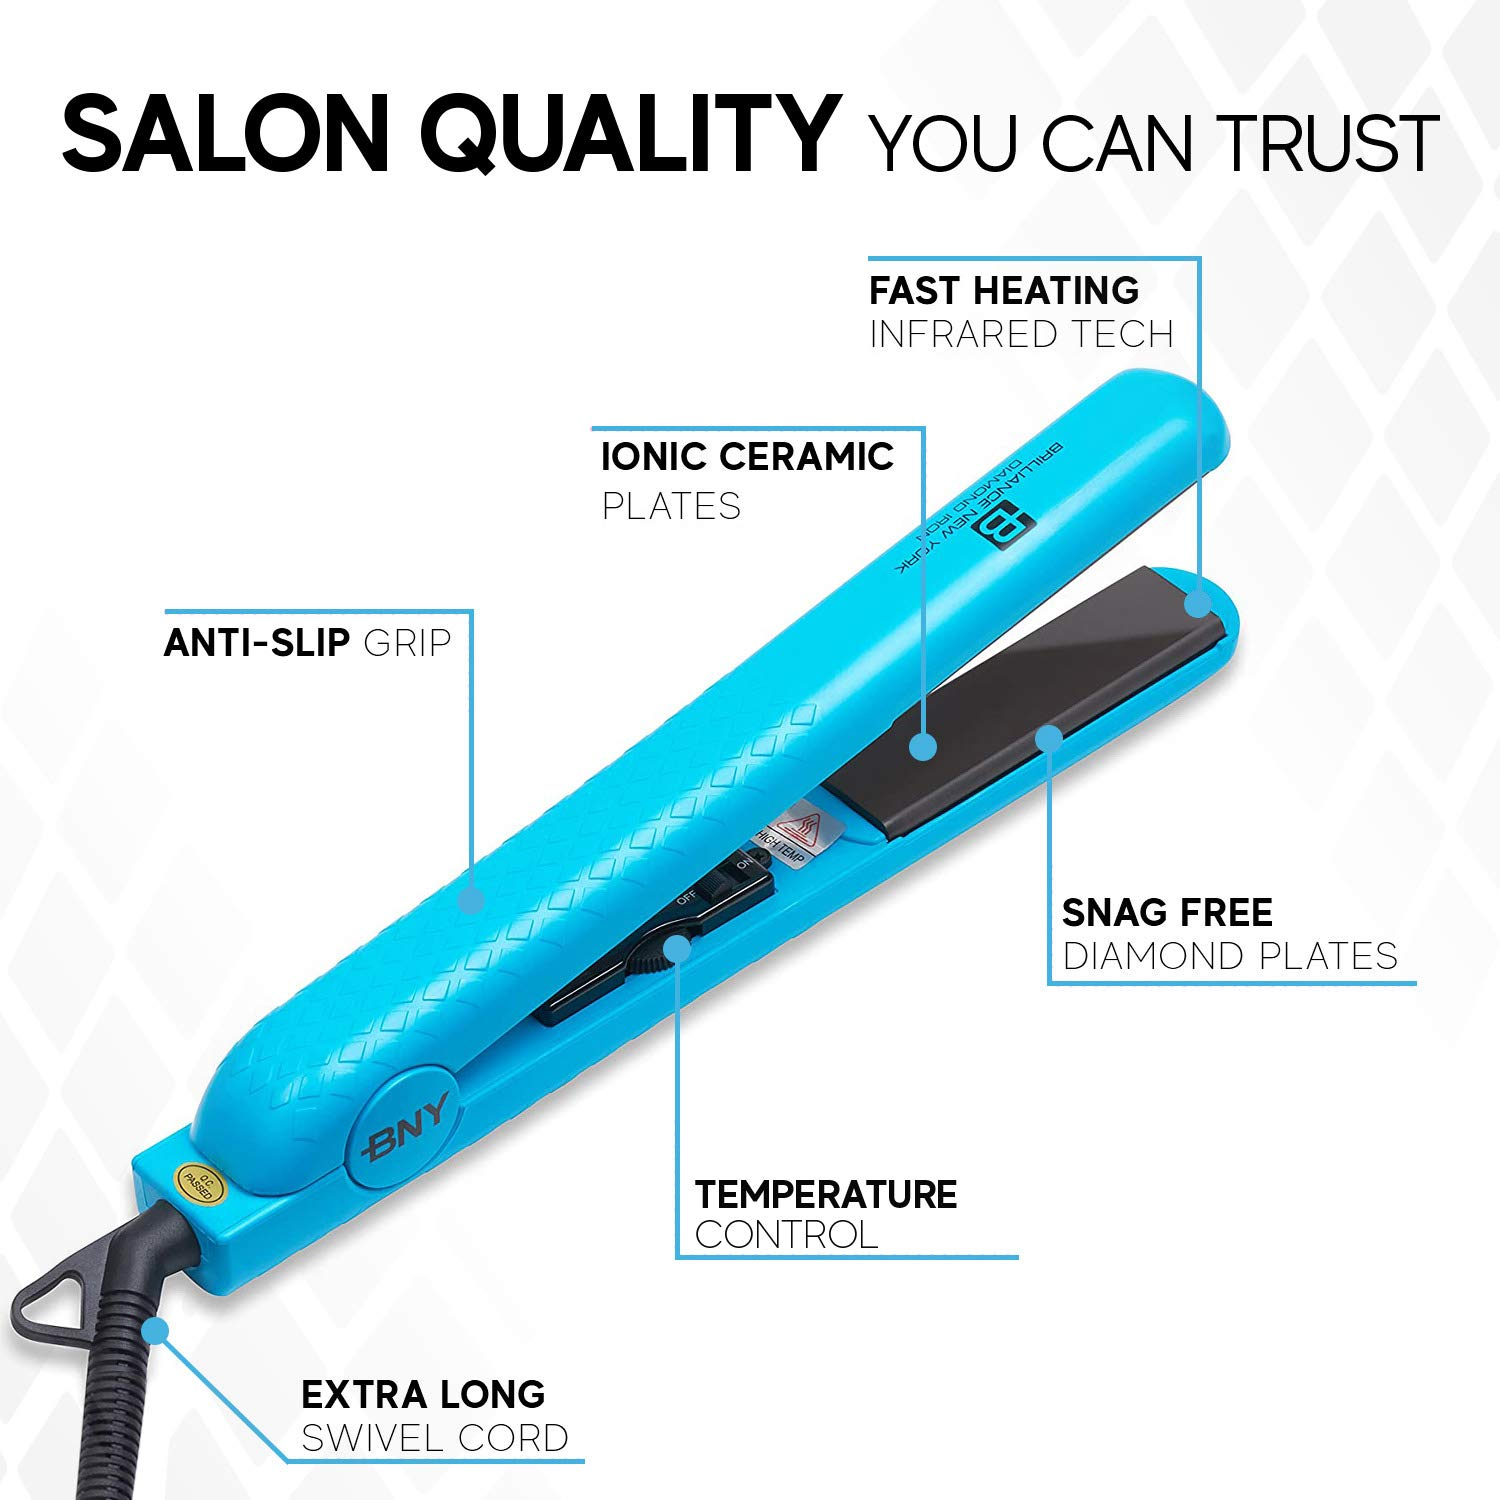 Brilliance New York - 1.25 Inch Diamond Ceramic flat iron - 2 in 1 hair Straightener and Curler - Frizz-free and Anti-static Ionic Plates - Dual Voltage